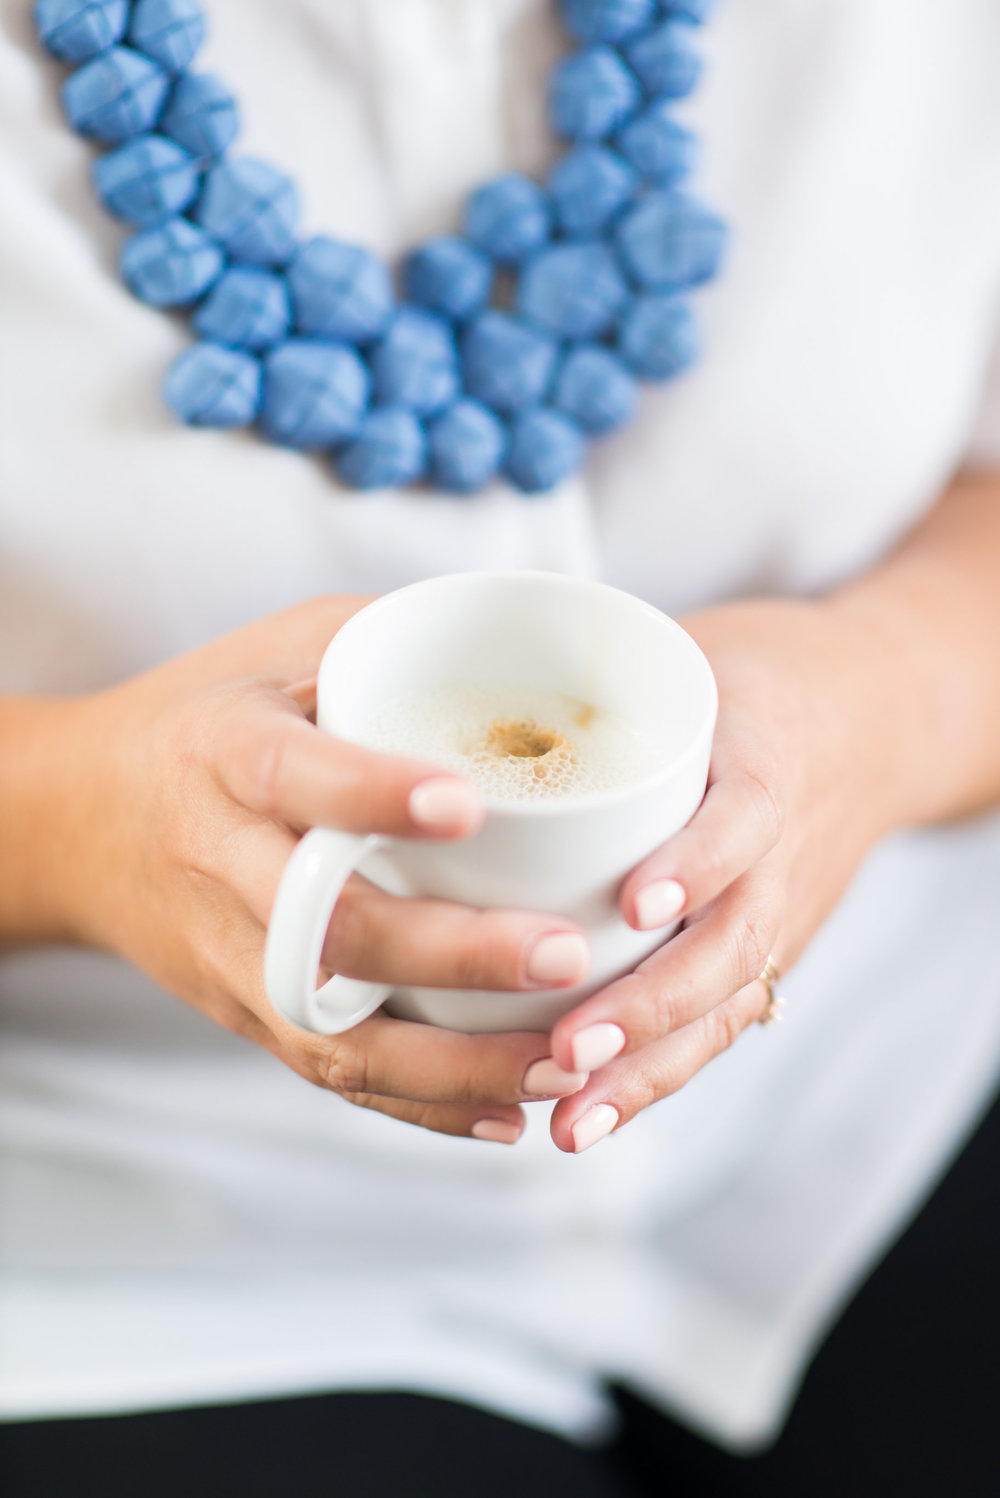 Let's Chat! - I would love to meet for coffee (or call with coffee in hand) and chat about how we can infuse your event or home with the special details that pull it all together. Please reach out - even if you're not exactly sure what you're looking for!*For the brides* If you're like most brides I meet, you might know you want custom calligraphy but might be very worried about your budget's capacity to accommodate it. Don't let this hold you back from meeting with me. There are always ways we can add that special touch within any budget!